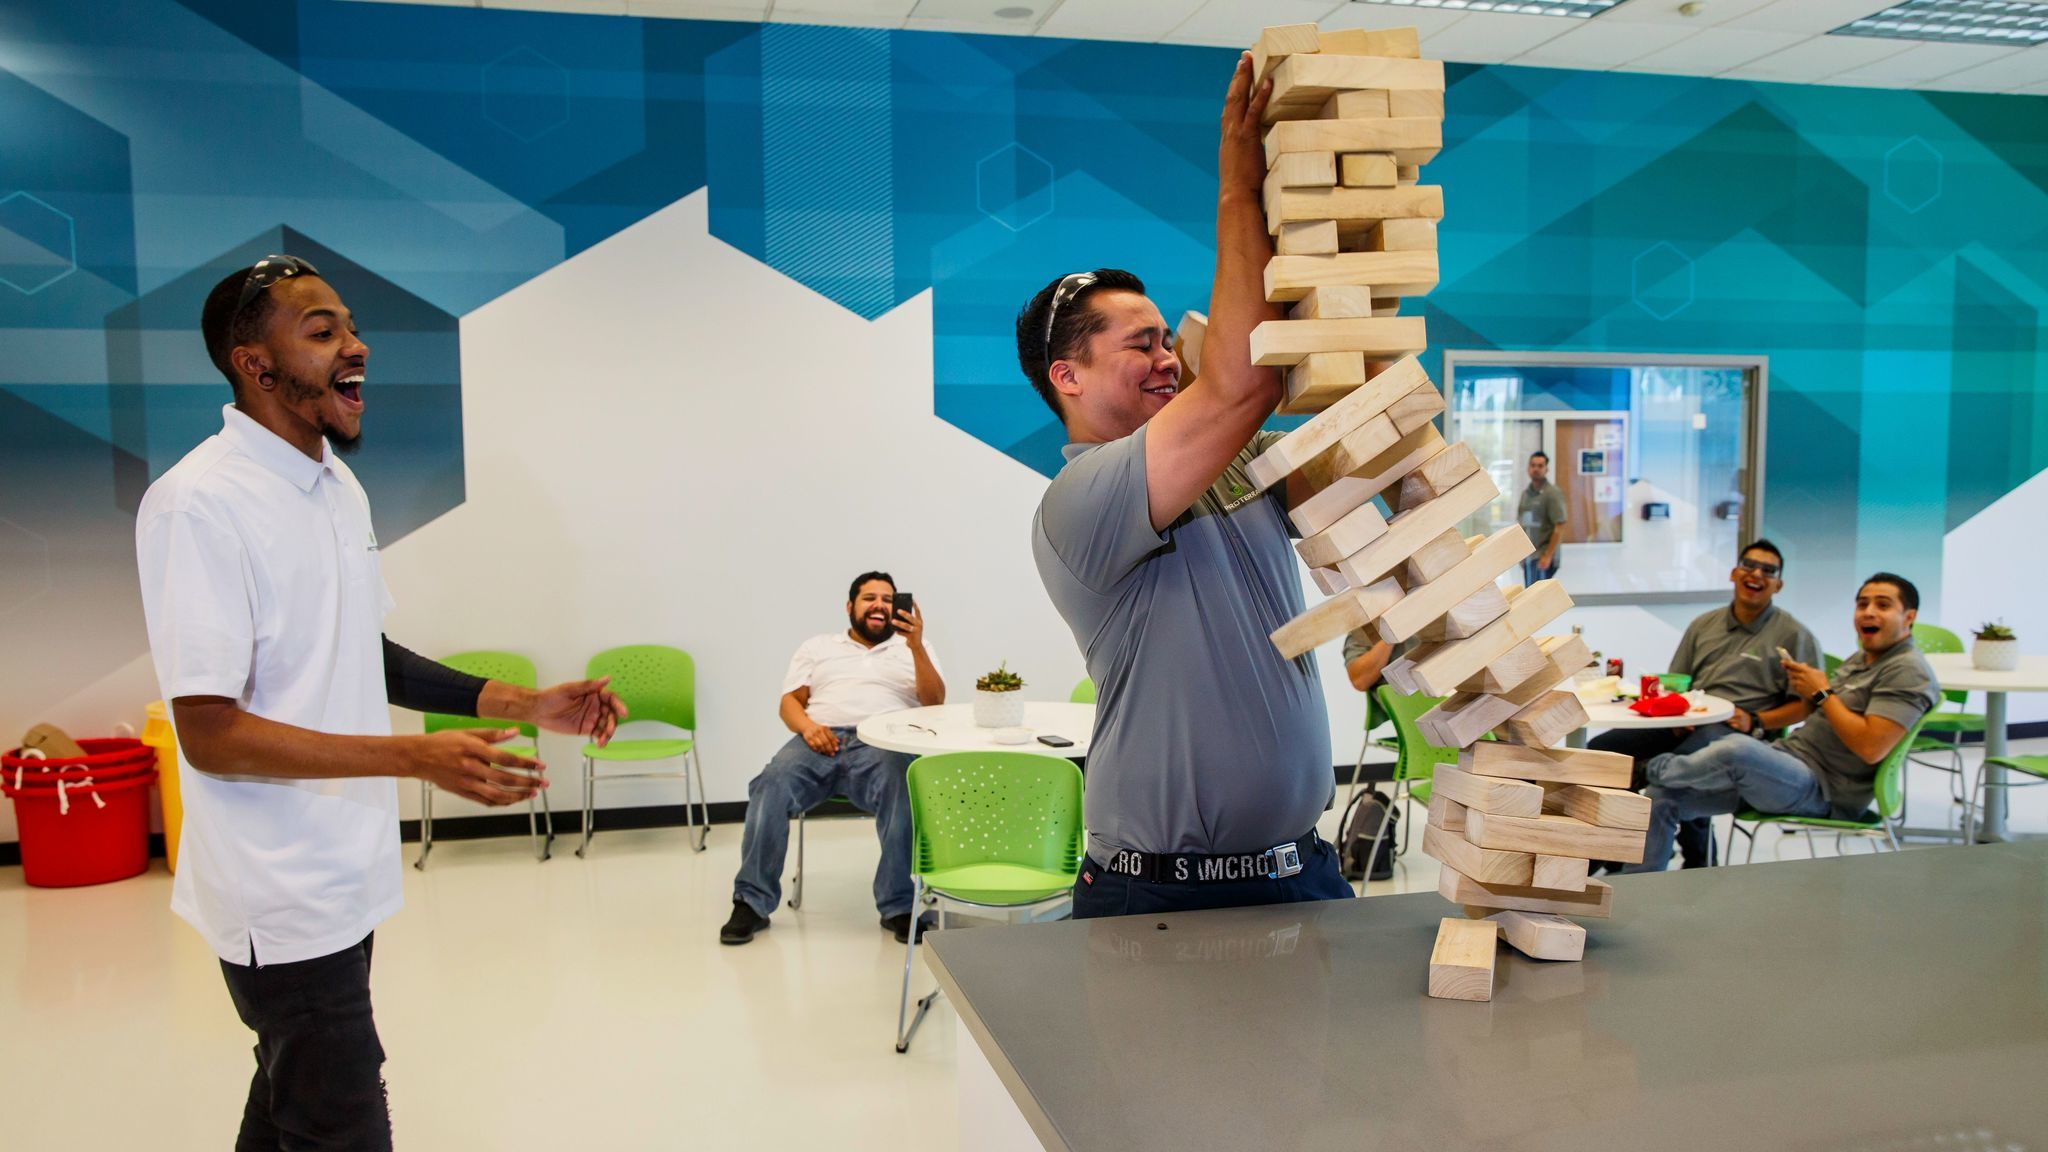 Derik Stone and Manny Almanza play giant Jenga on their lunch break. Proterra gives them 45 minutes.